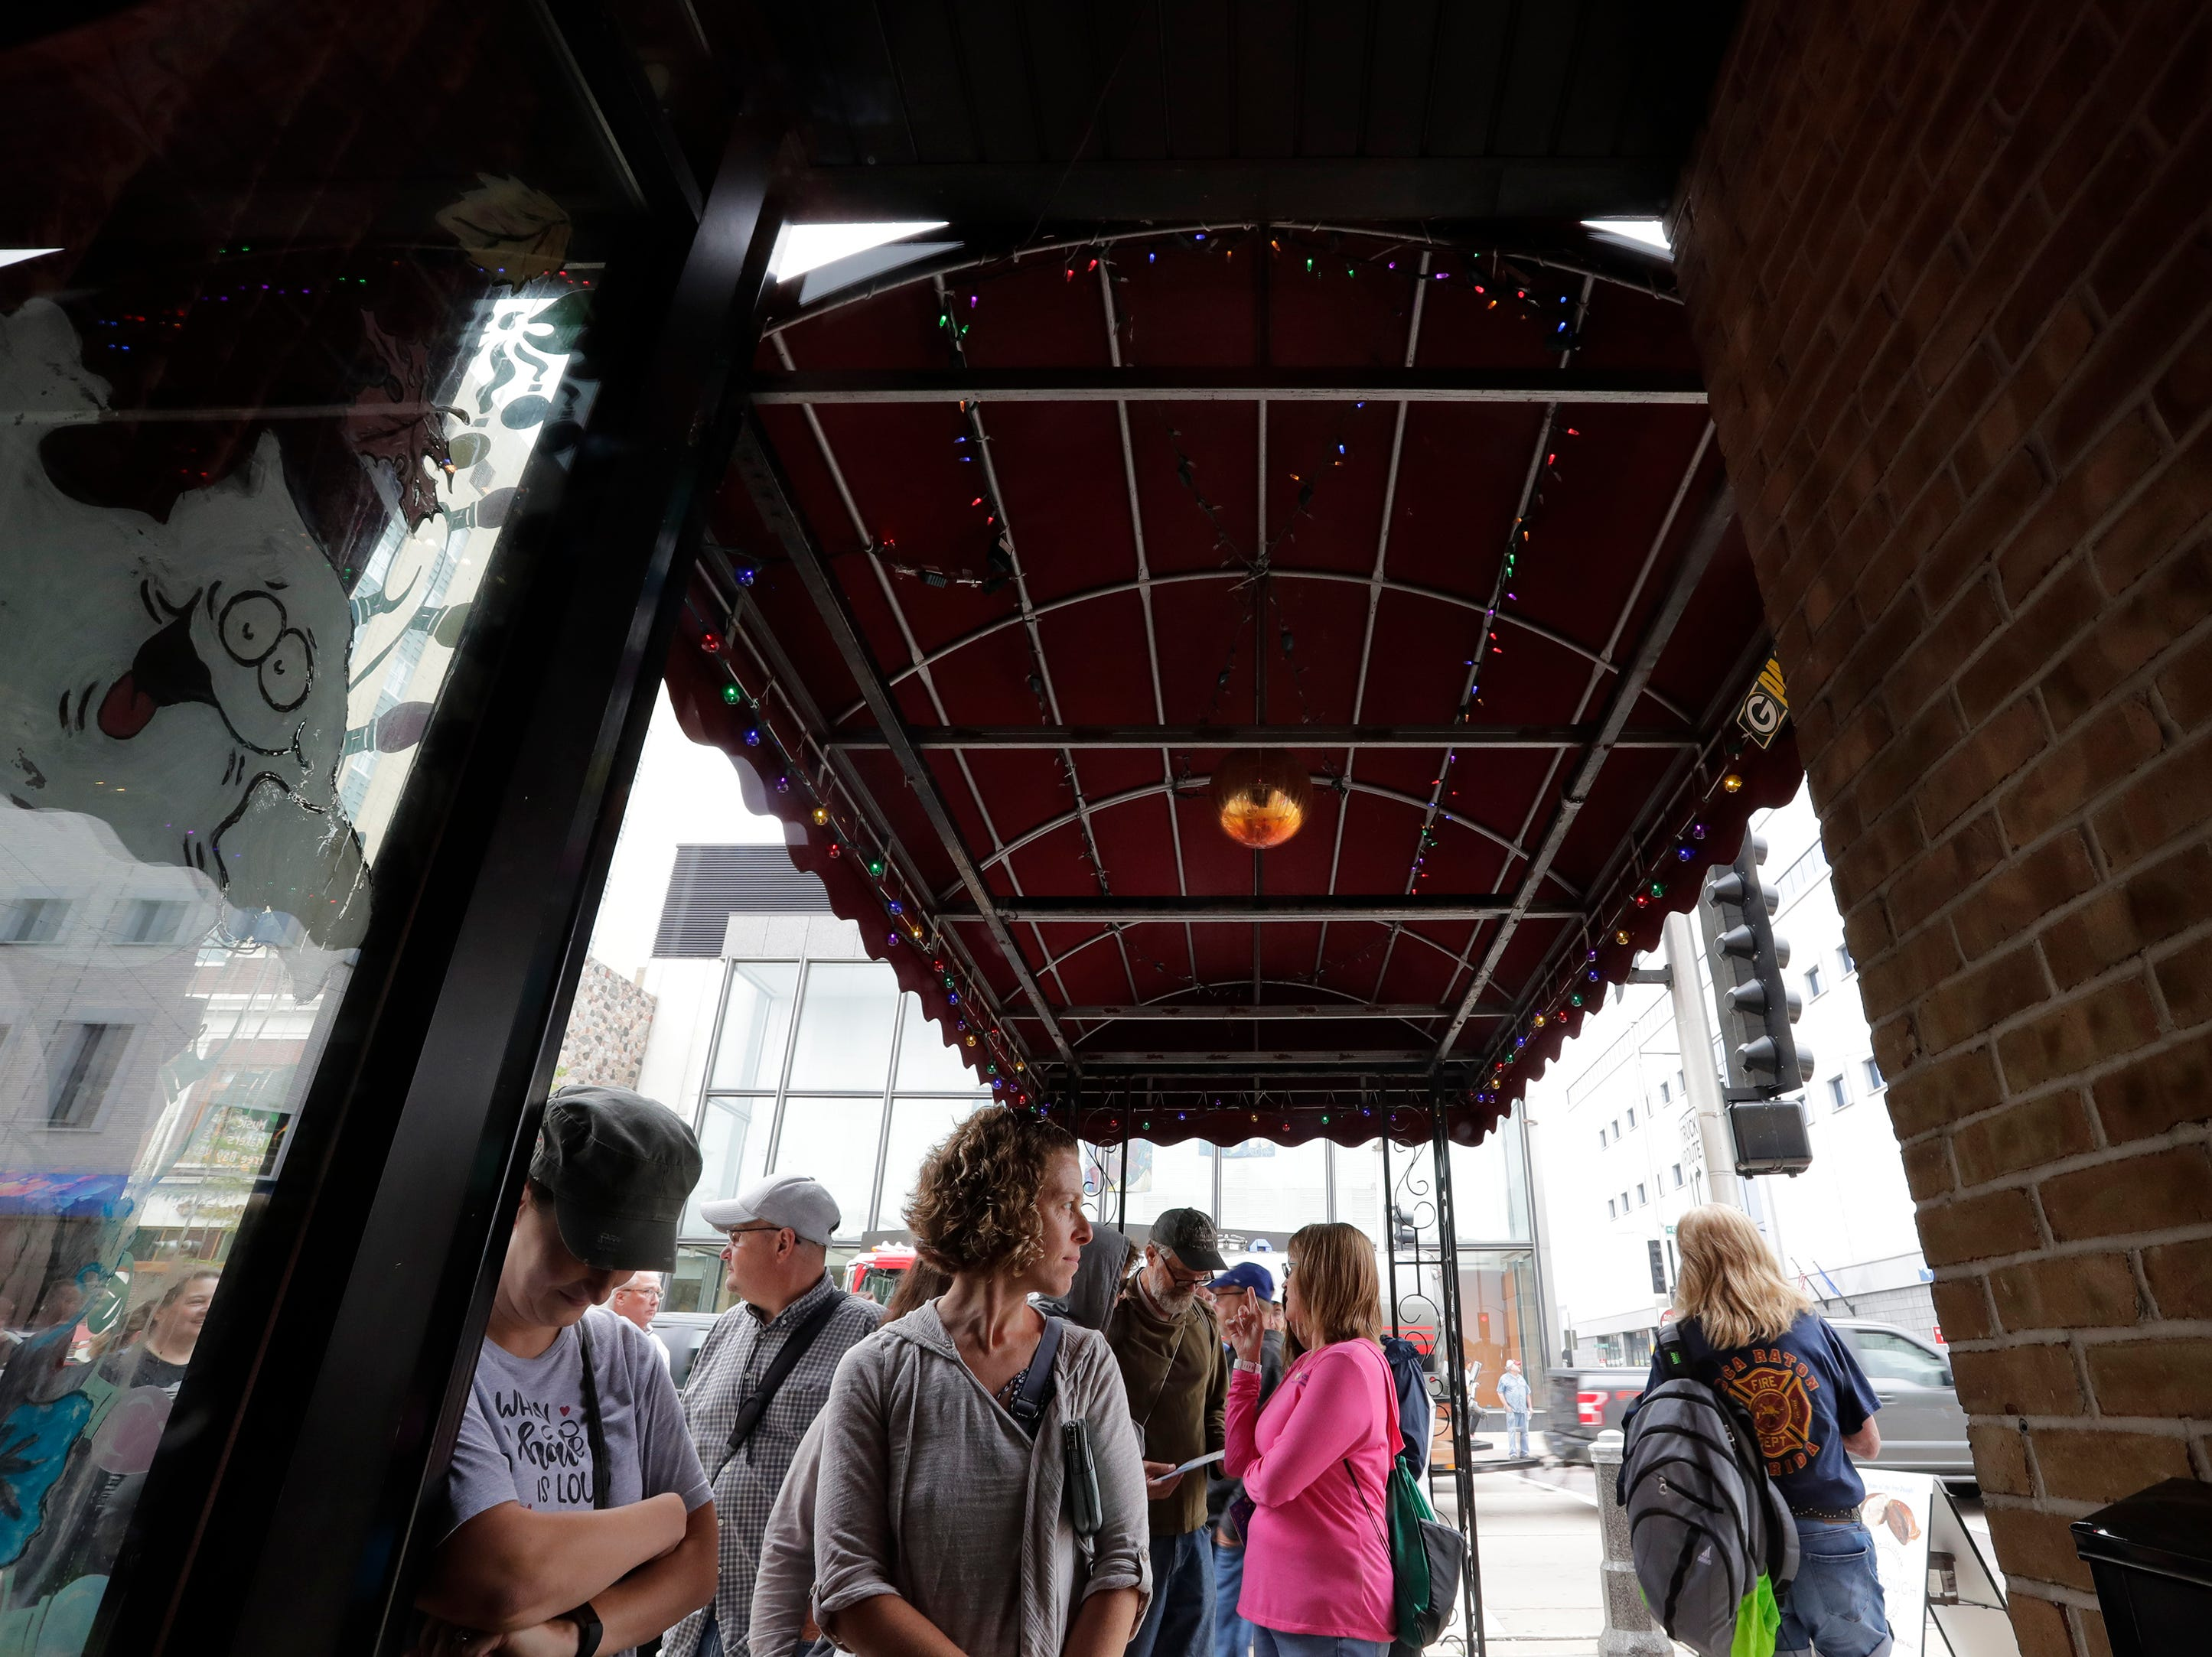 Music fans wait in line to here a performance at Cleo's Brown Beam Tavren during the Mile of Music Thursday, August 2, 2018, in Appleton, Wis.  Dan Powers/USA TODAY NETWORK-Wisconsin